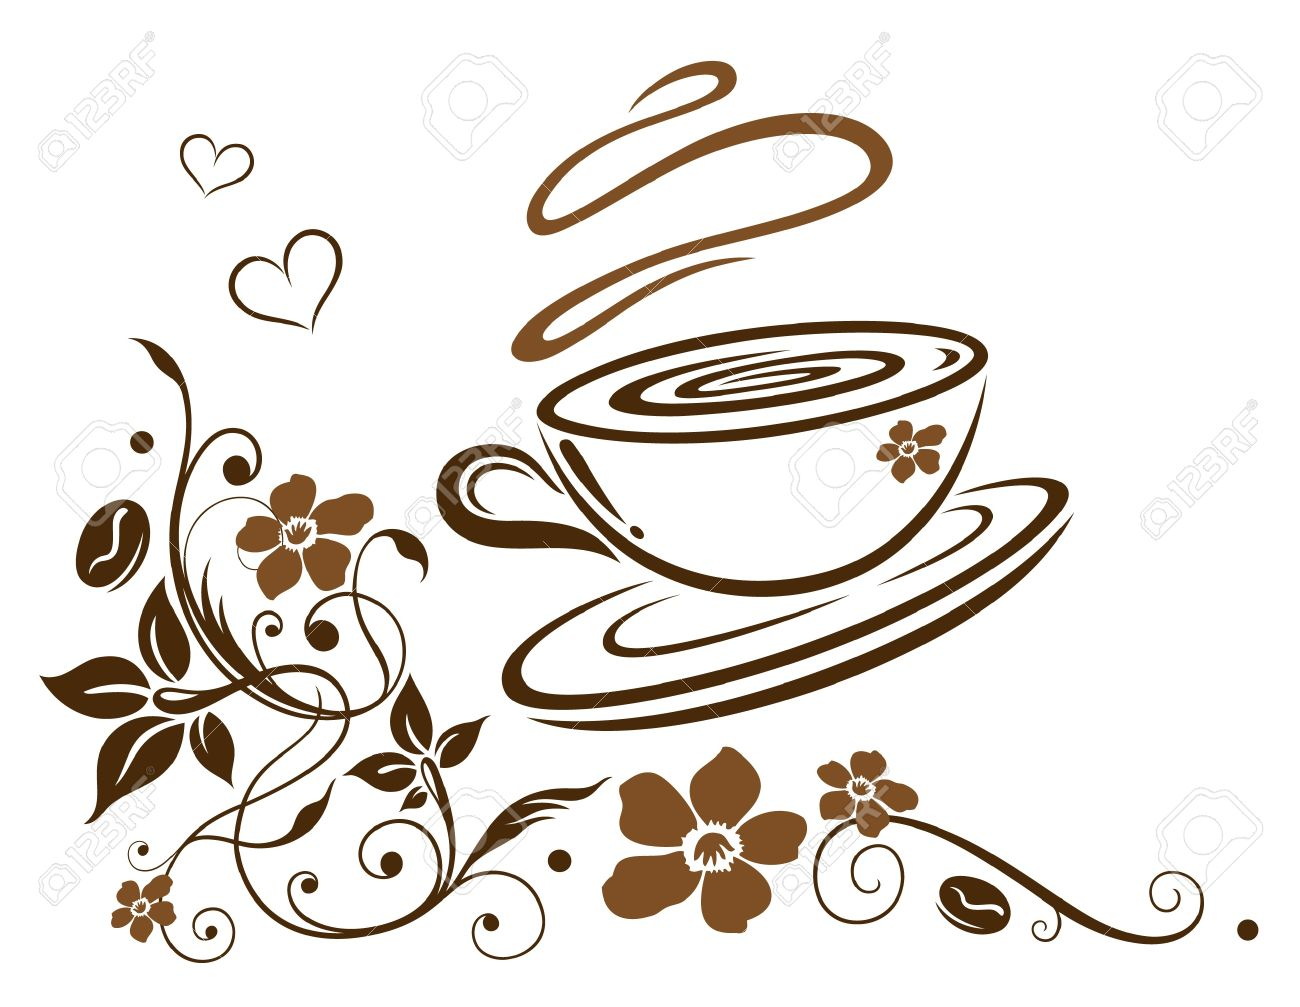 Latte clipart cafe border. Printable art for coffee